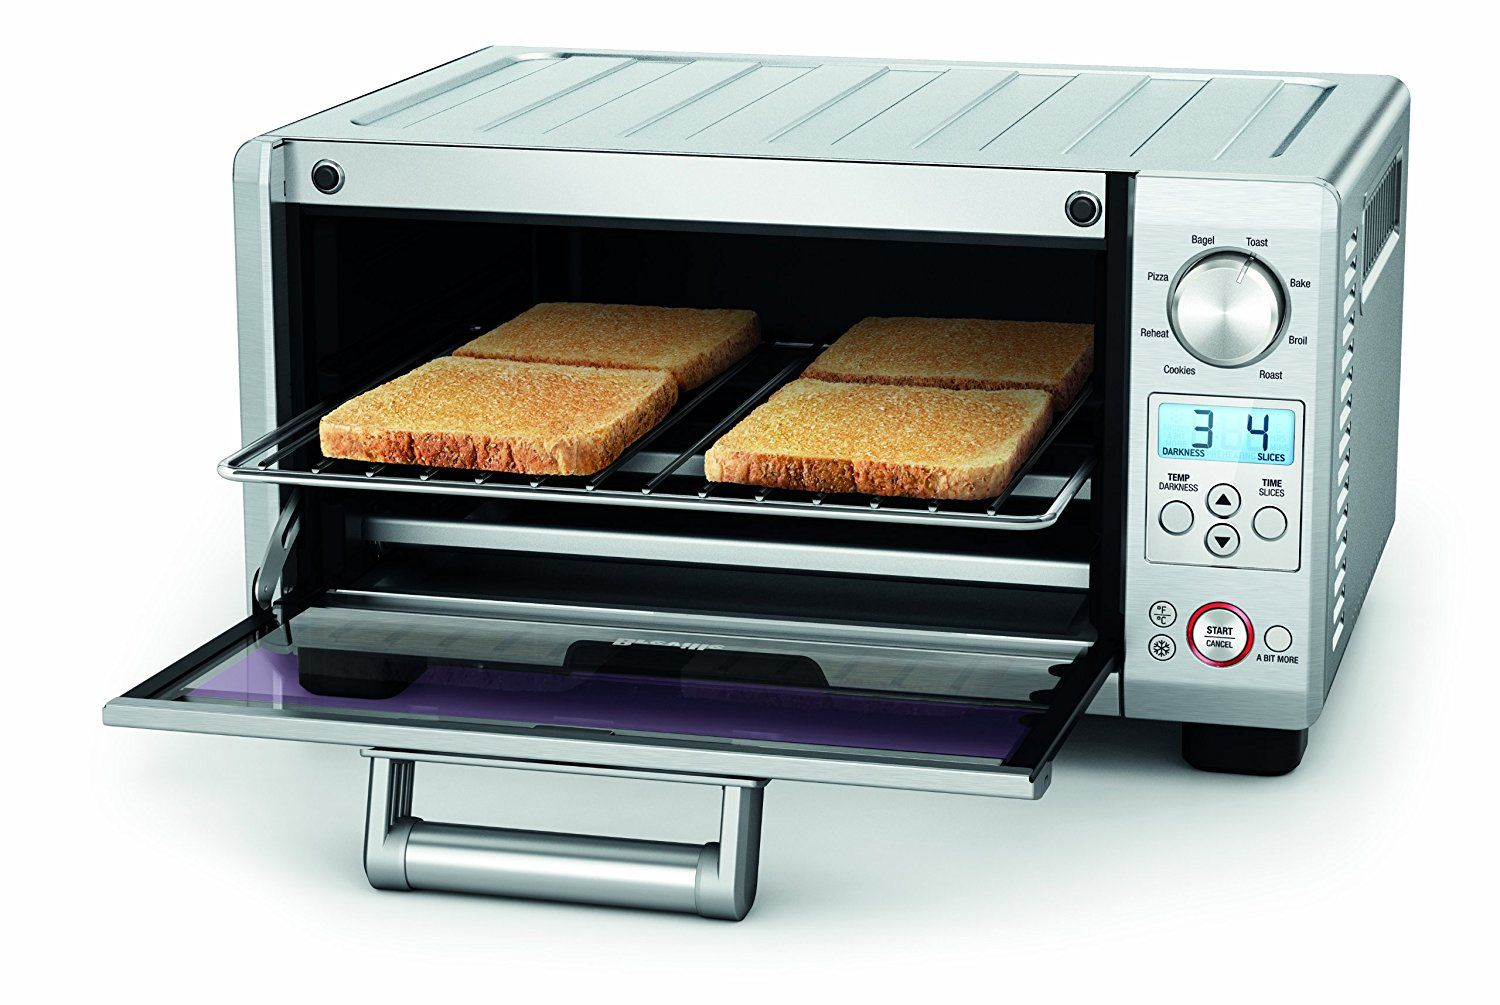 Breville Bov450xl Review Read Before You Buy Countertop Oven Toaster Mini Toaster